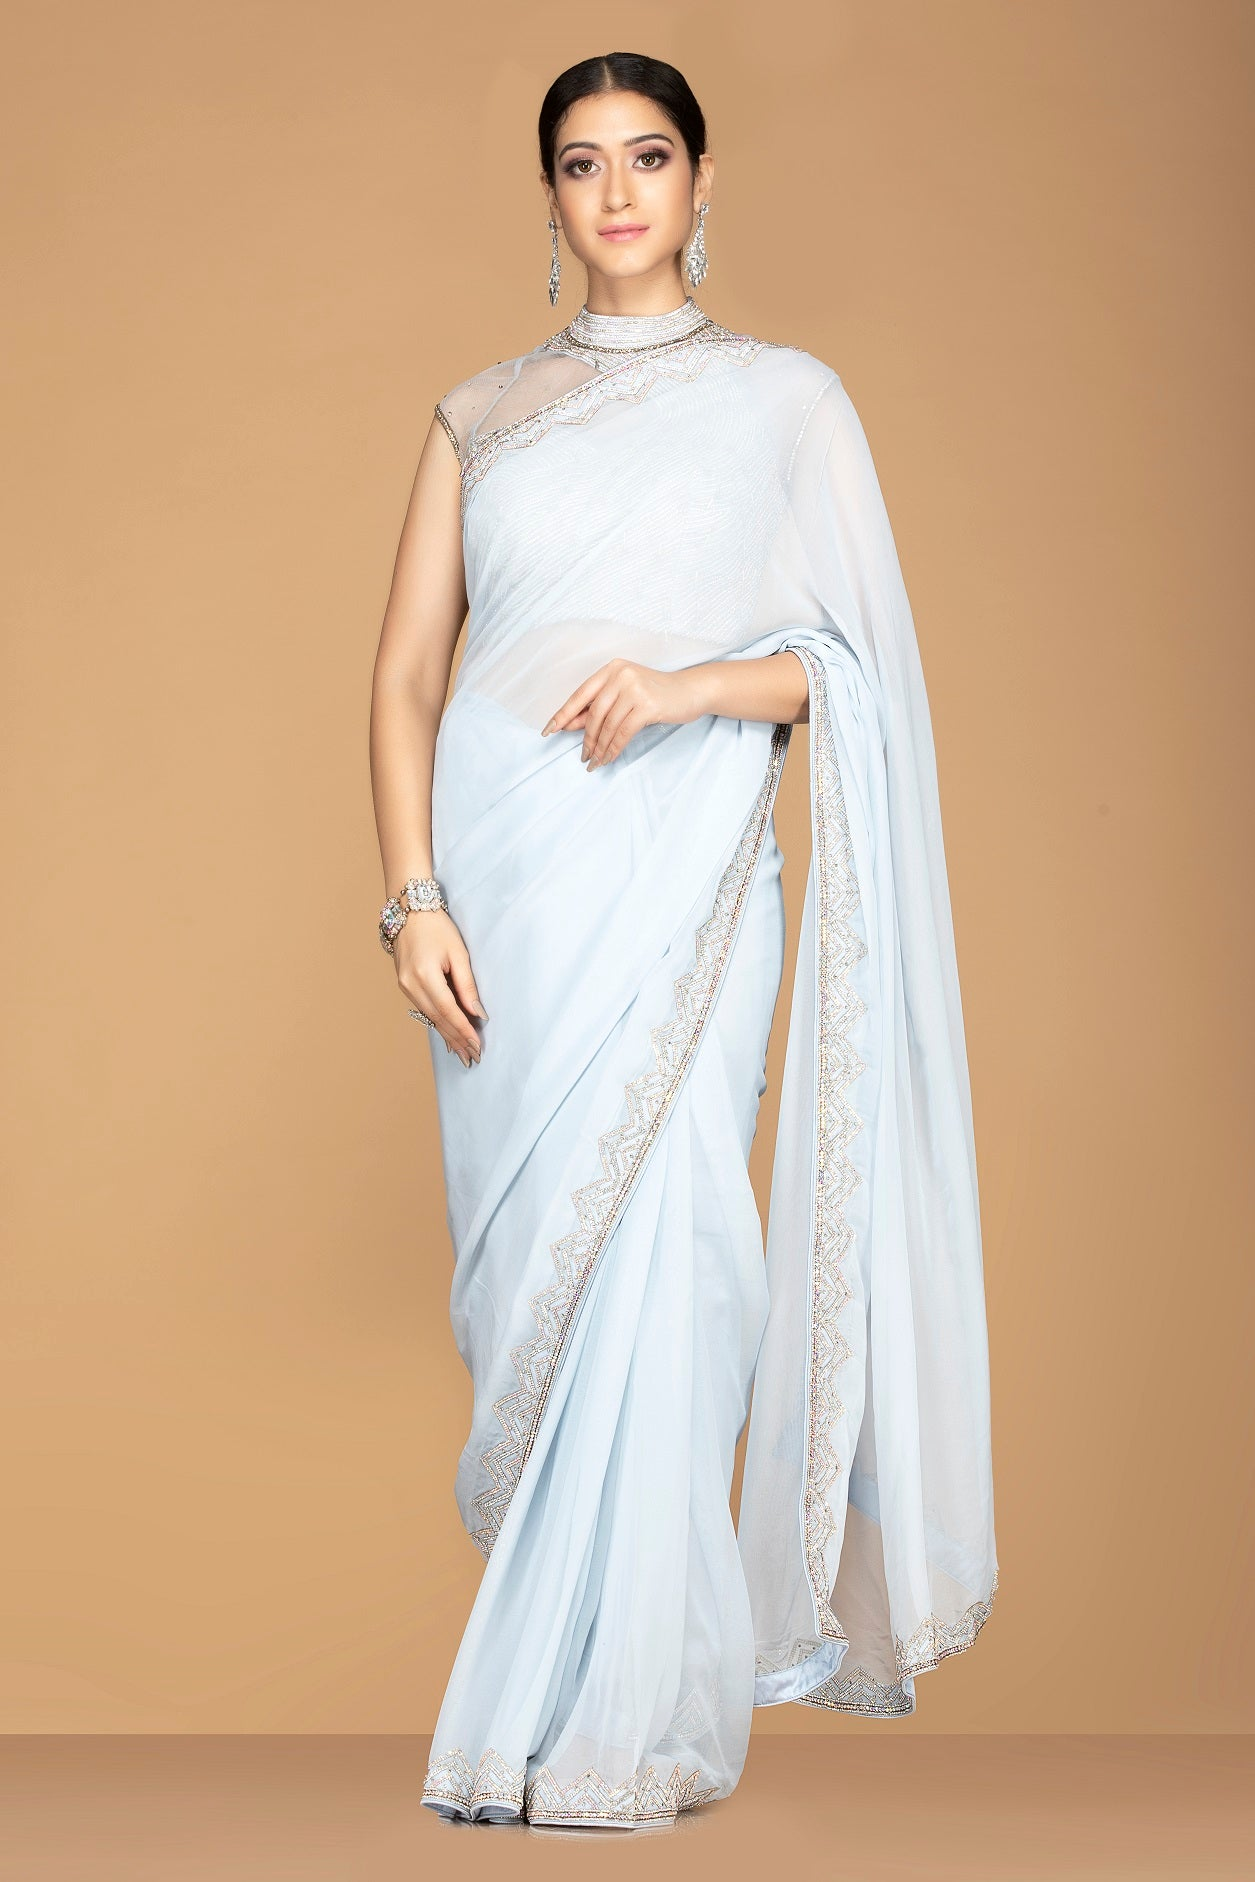 Shop charming powder blue embroidered sari online in USA with high neck saree blouse. Champion ethnic fashion with a splendid collection of designer sarees, embroidered sarees with blouse, weddings sarees from Pure Elegance Indian fashion store in USA.-full view